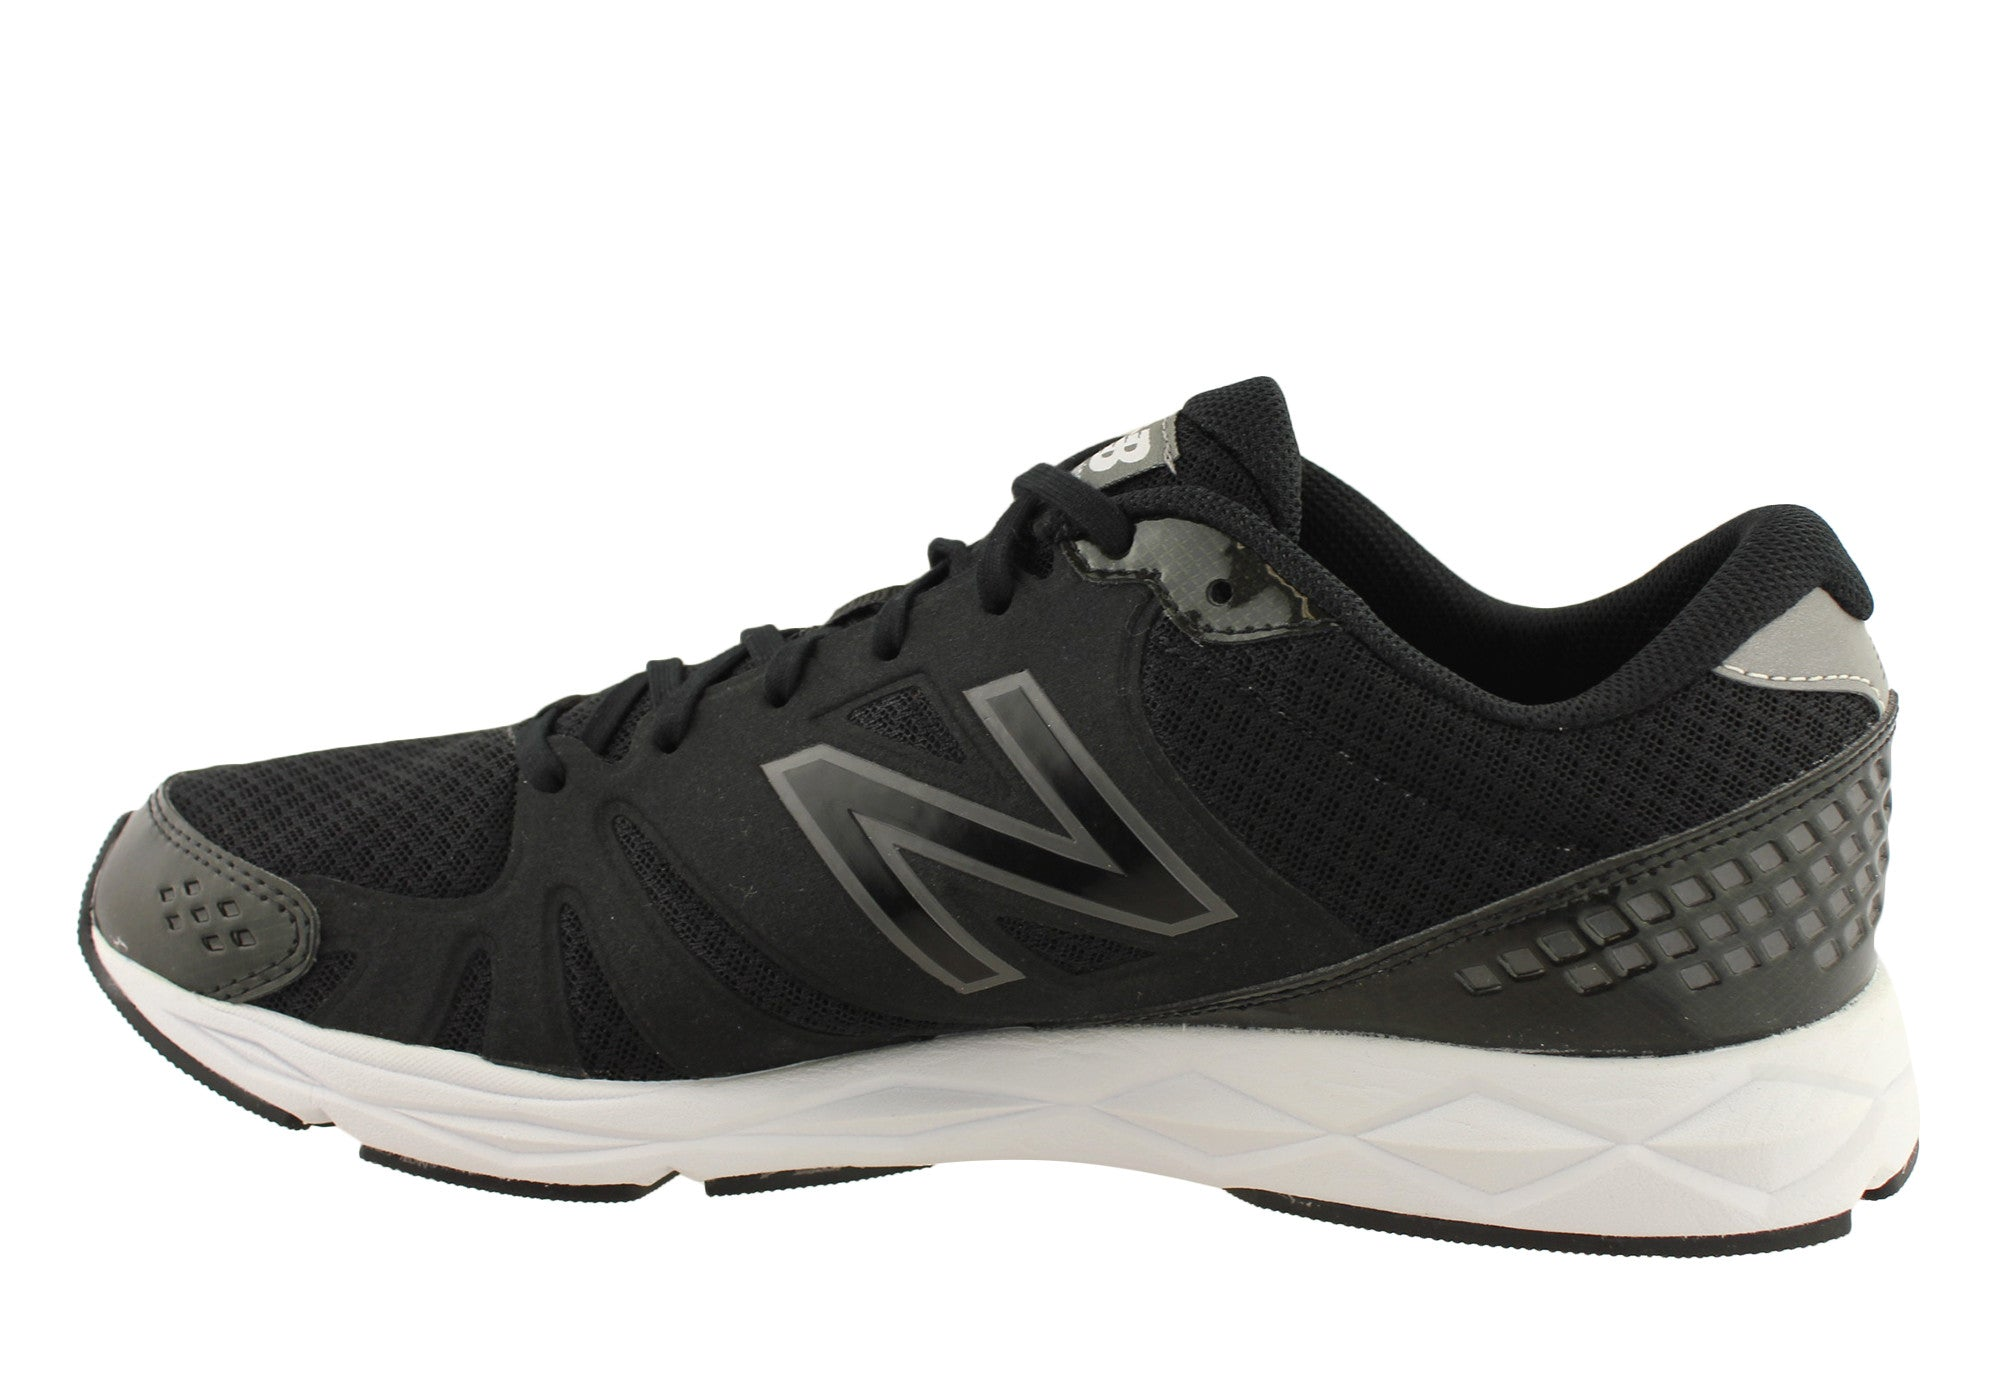 New Balance ME1420BK Mens Sports/Casual Shoes